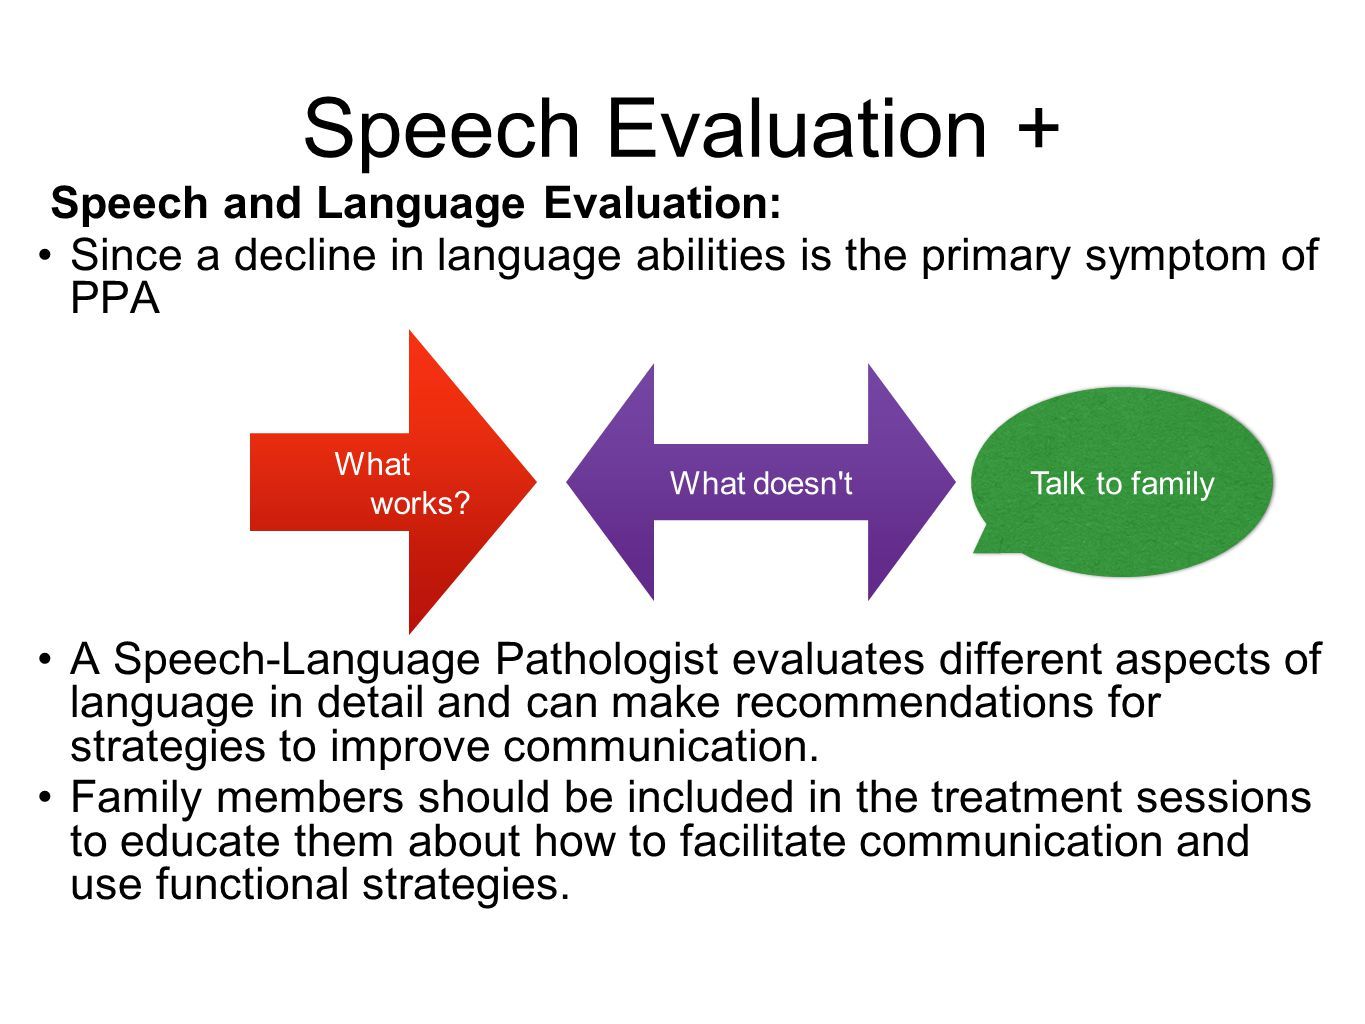 Speech Evaluation + Speech and Language Evaluation: Since a decline in language abilities is the primary symptom of PPA A Speech-Language Pathologist evaluates different aspects of language in detail and can make recommendations for strategies to improve communication.